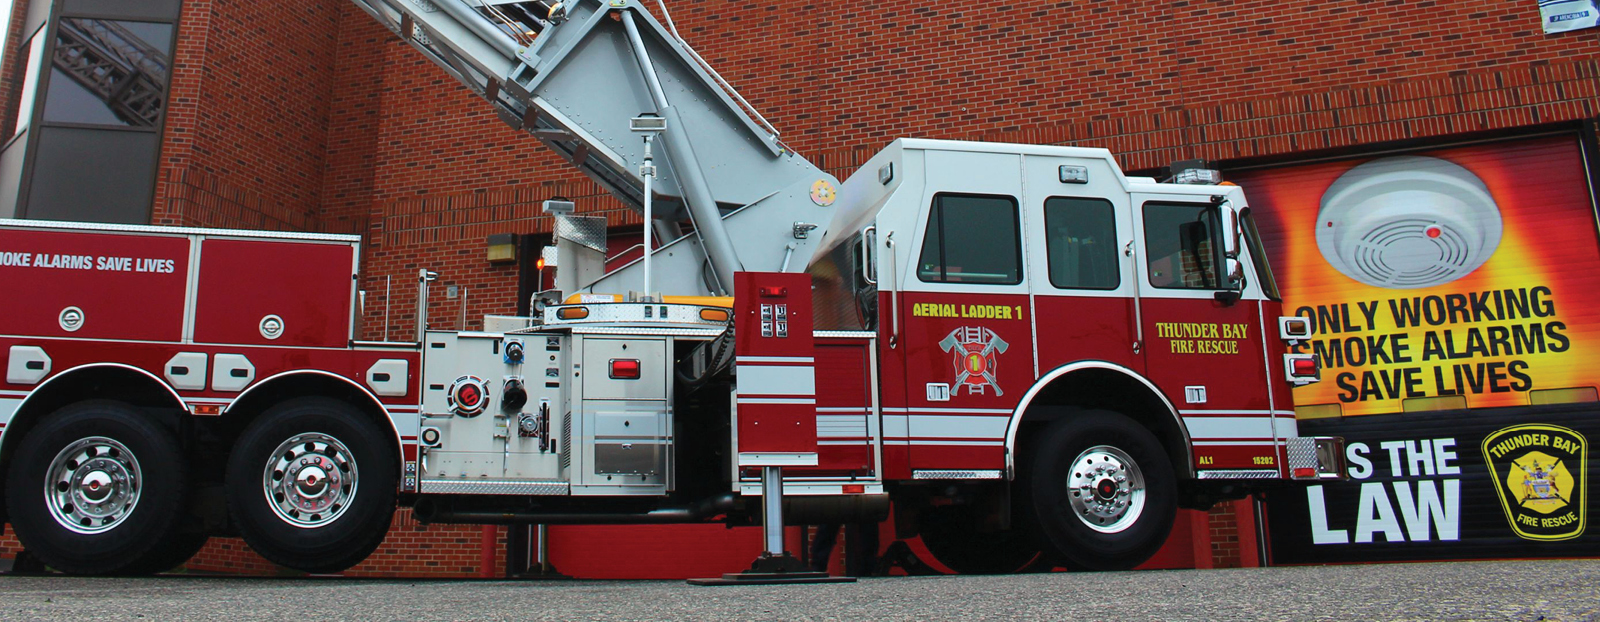 Thunder Bay fire truck